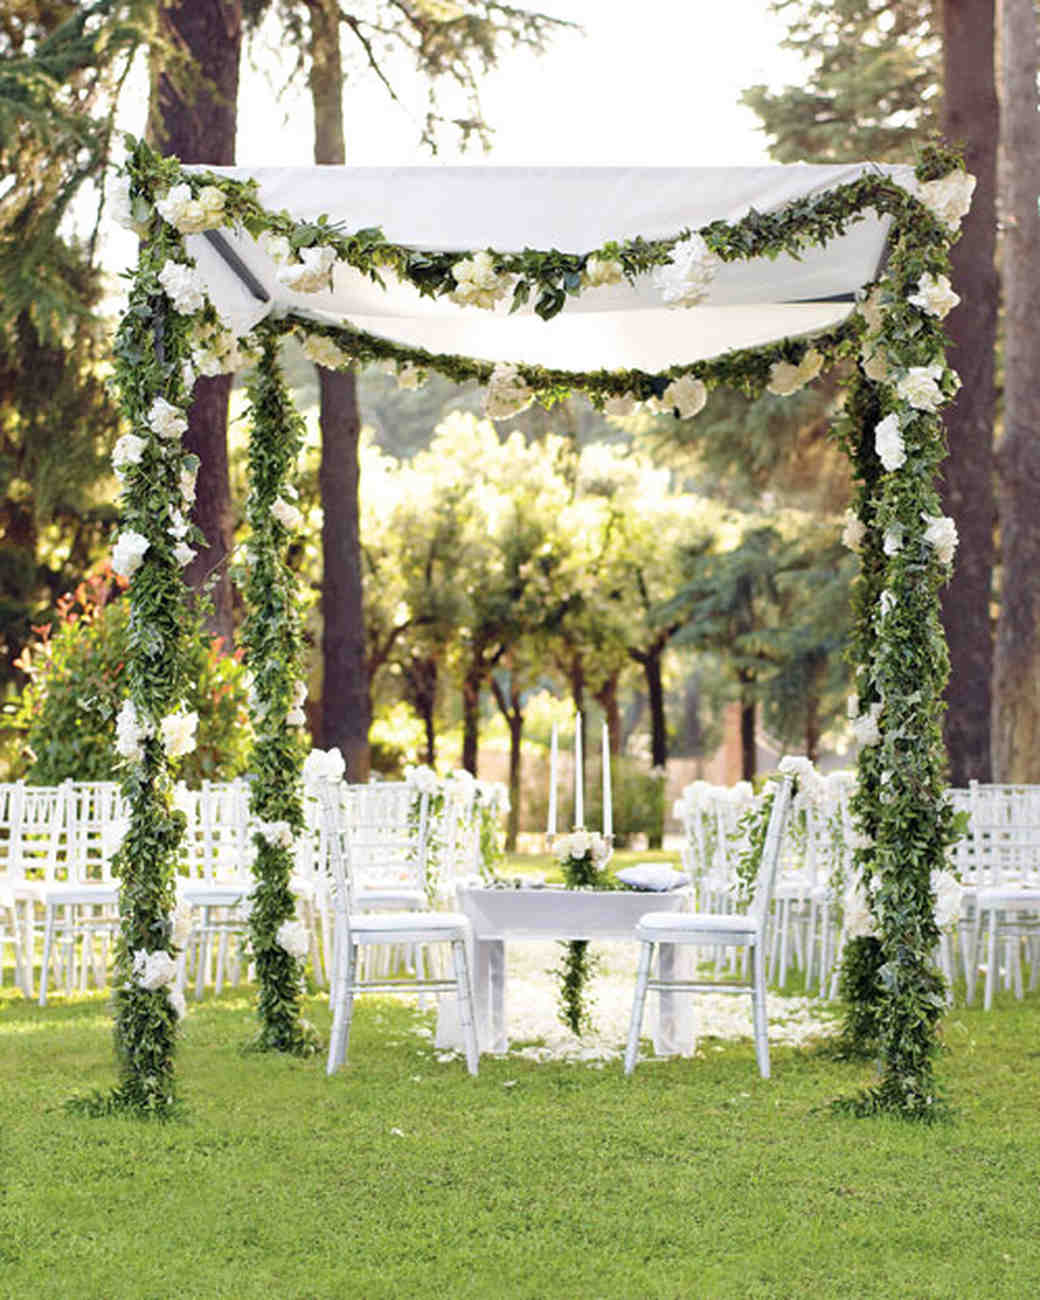 Outdoor Wedding Ceremony: A Romantic Outdoor Destination Wedding In Rome, Italy